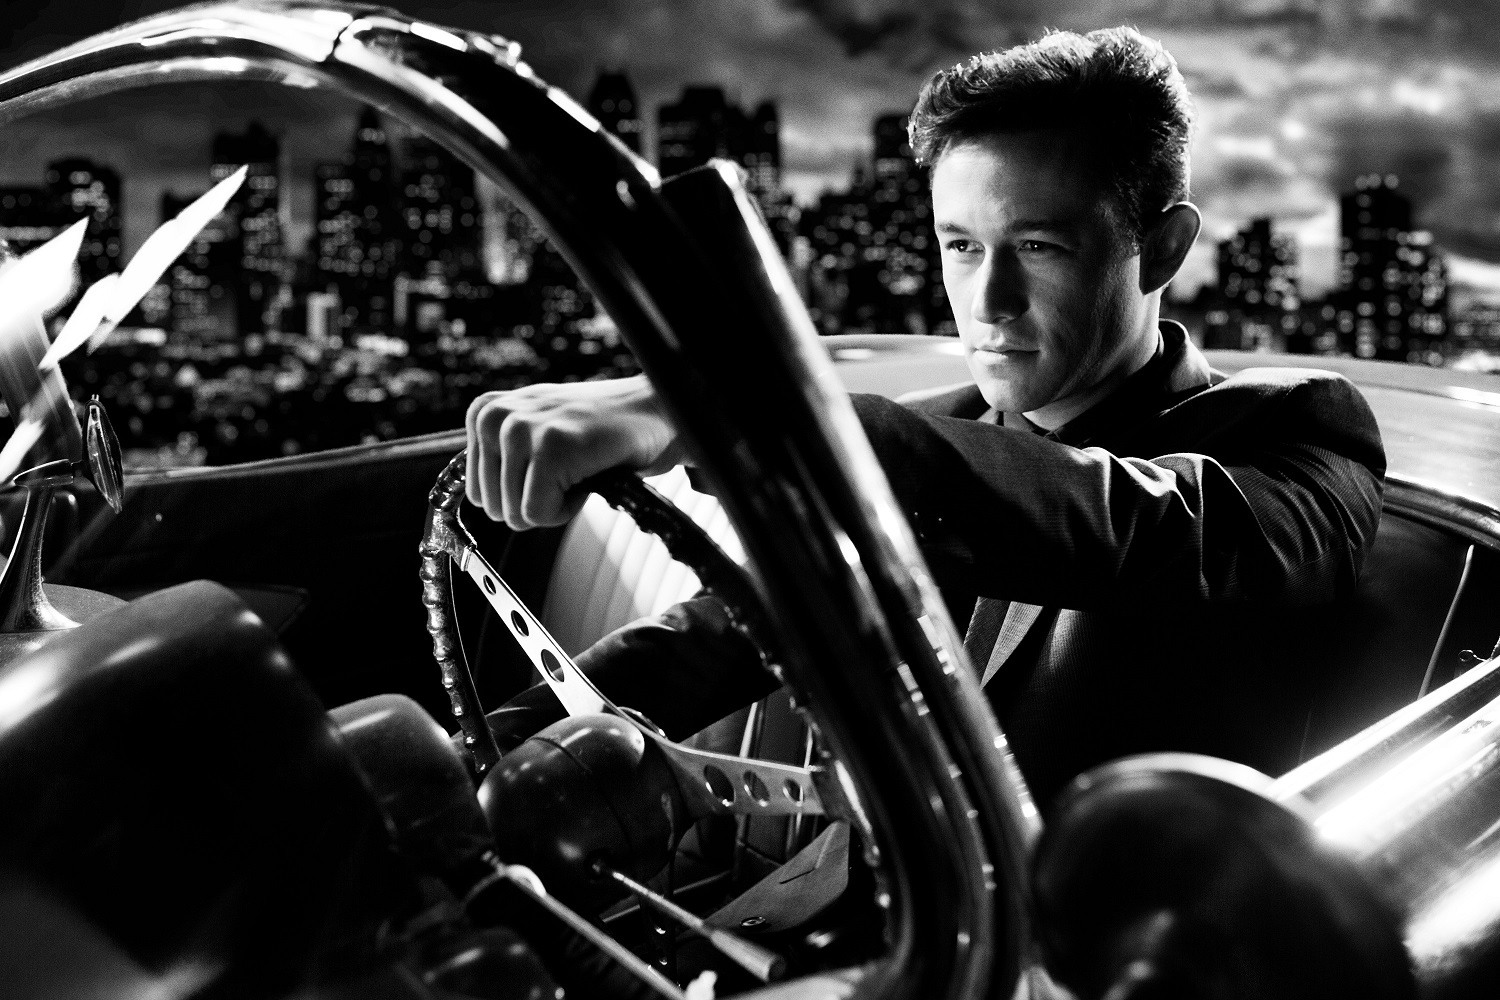 Joseph Gordon-Levitt as Johnny in The Long Bad Night episode of Sin City: A Dame to Kill For (2014)